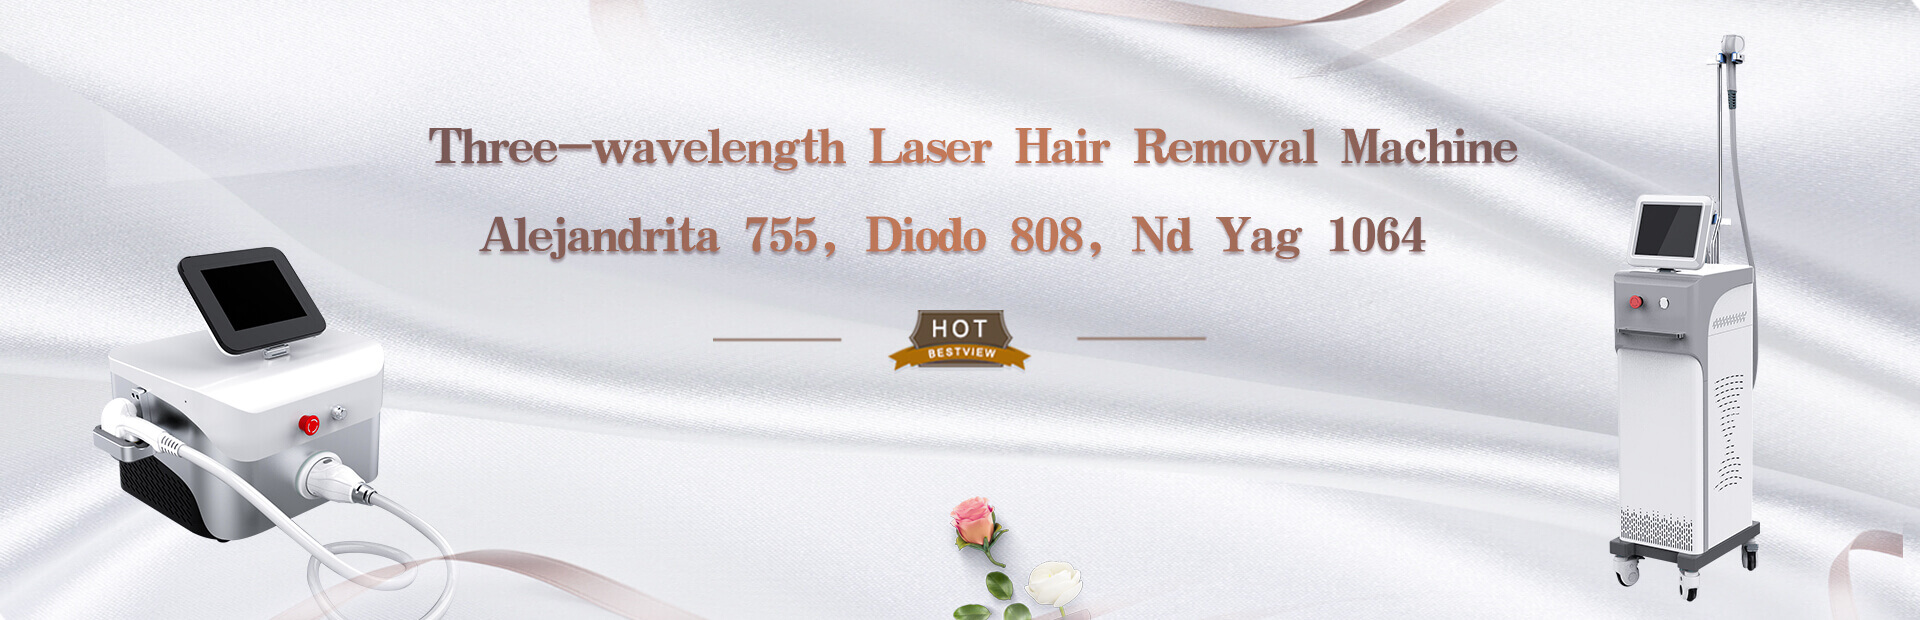 Three-wavelength Laser Hair Removal Machine   Alej